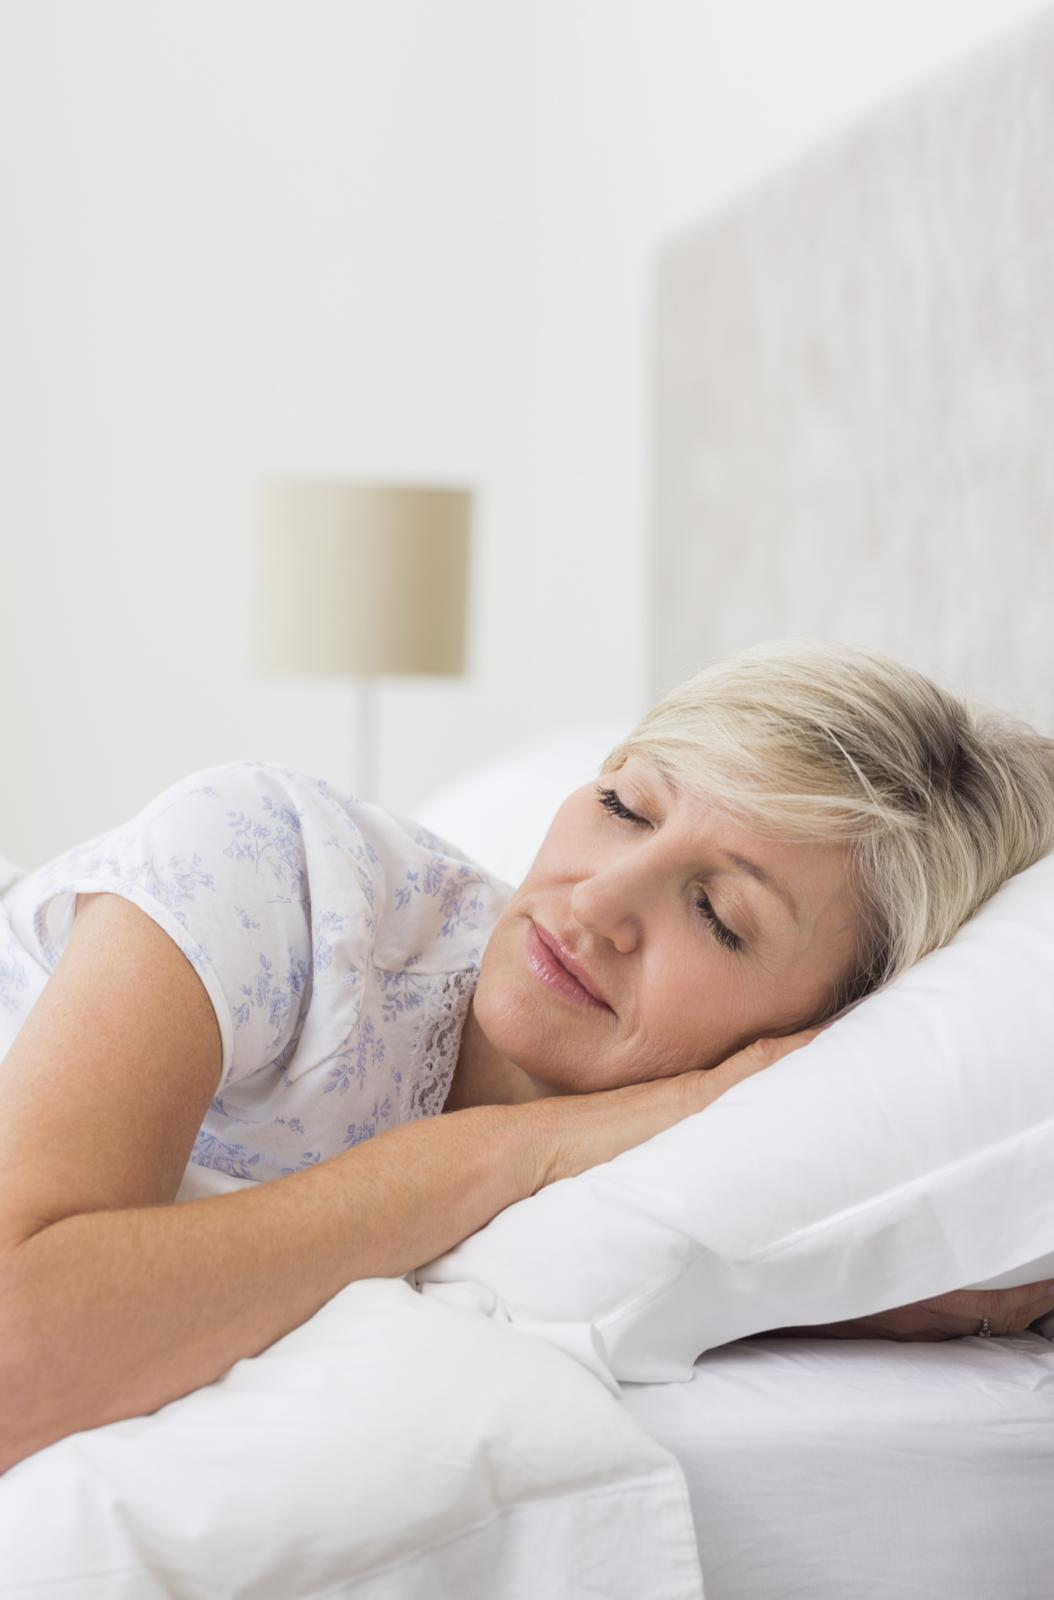 Mature-woman-sleeping-with-eyes-closed-in-bed-000058707446_Medium